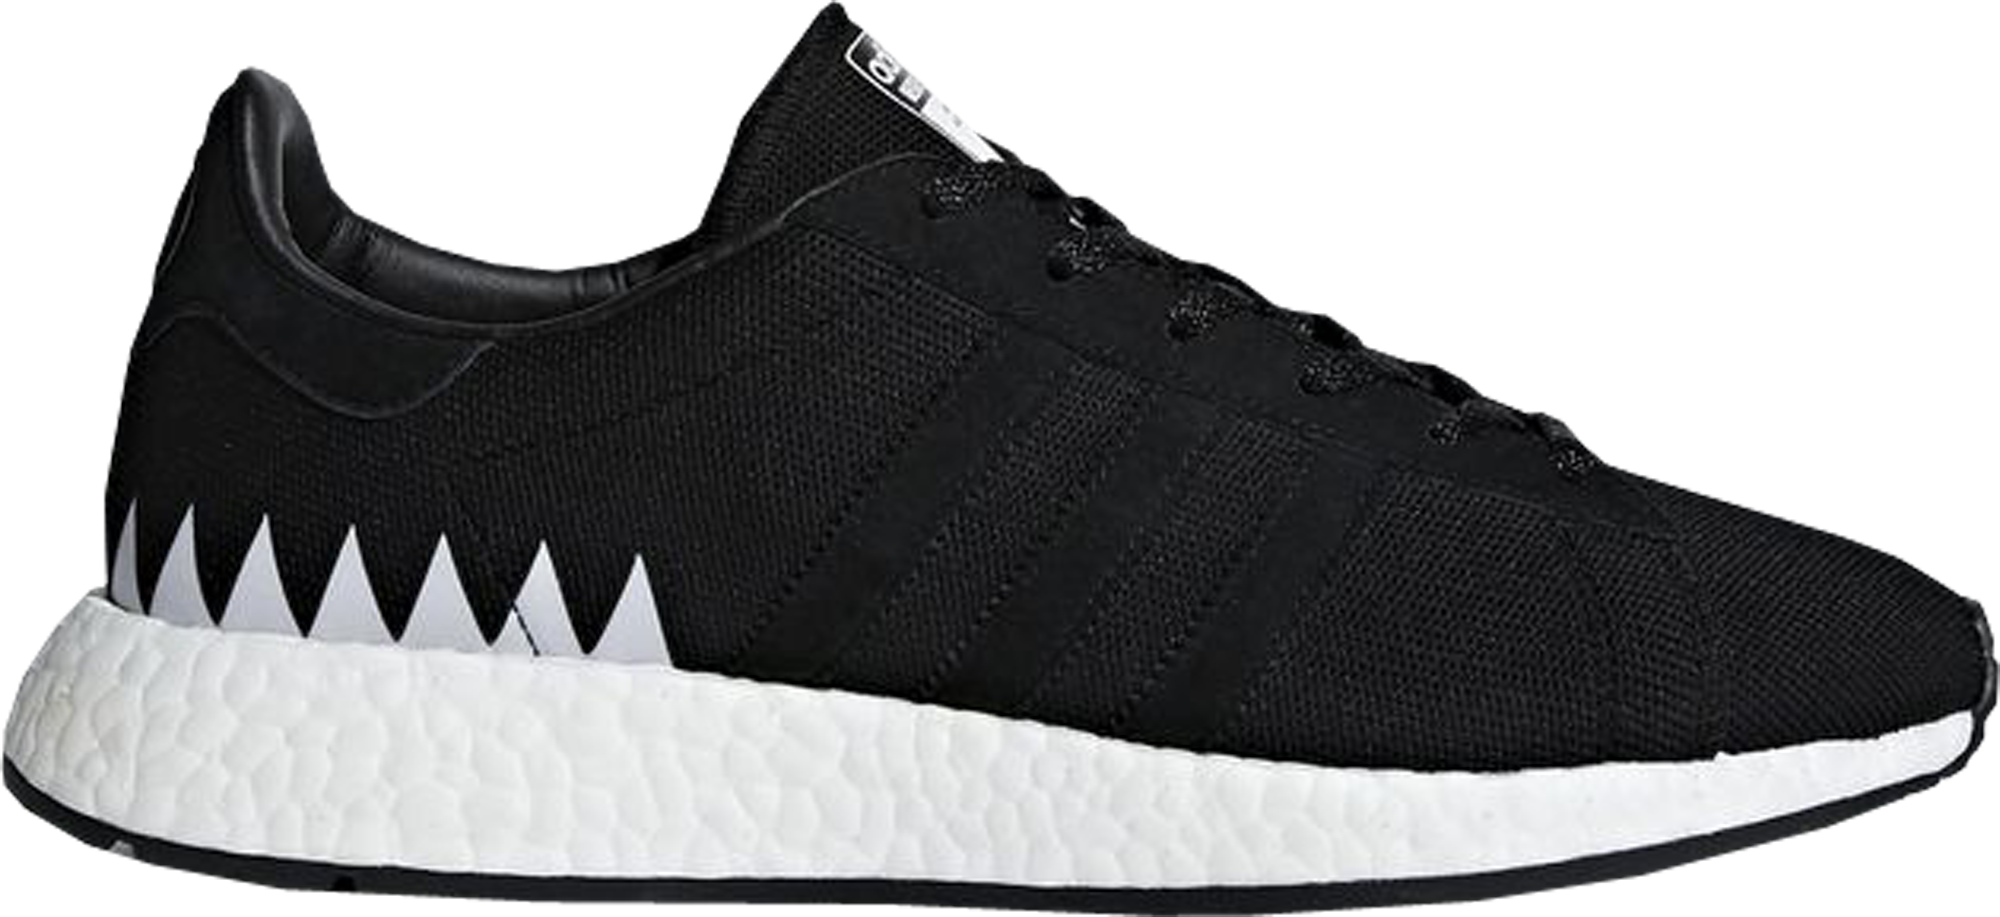 adidas Chop Shop Neighborhood Core Black